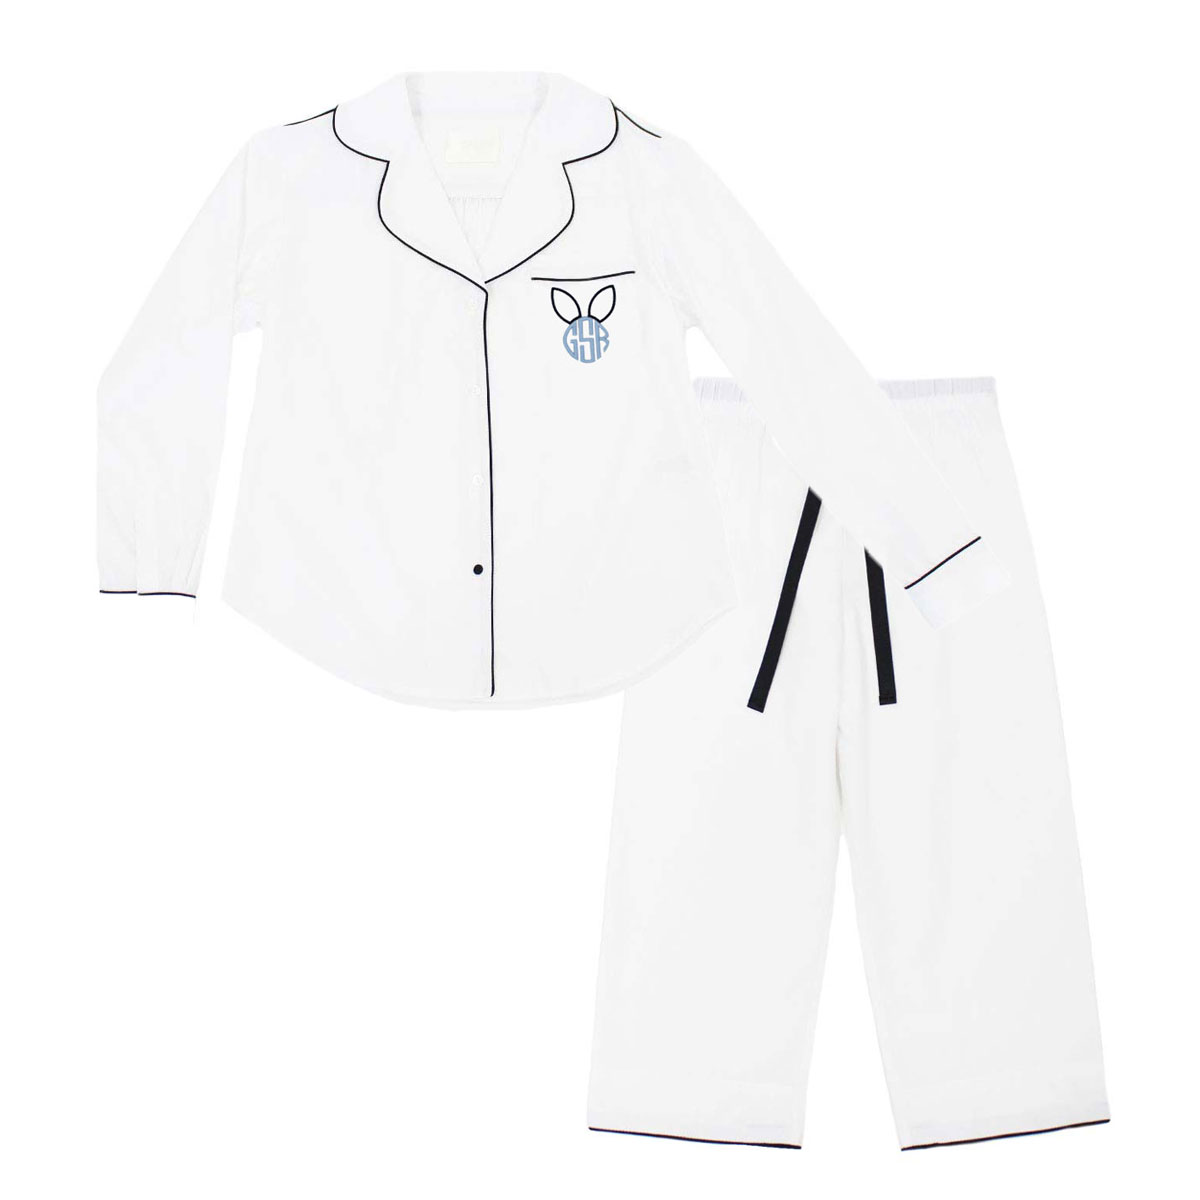 Piu Kids Bamboo Pajama Set in White with Black Piping & Bunny Ear Monogram on Pocket in Blue